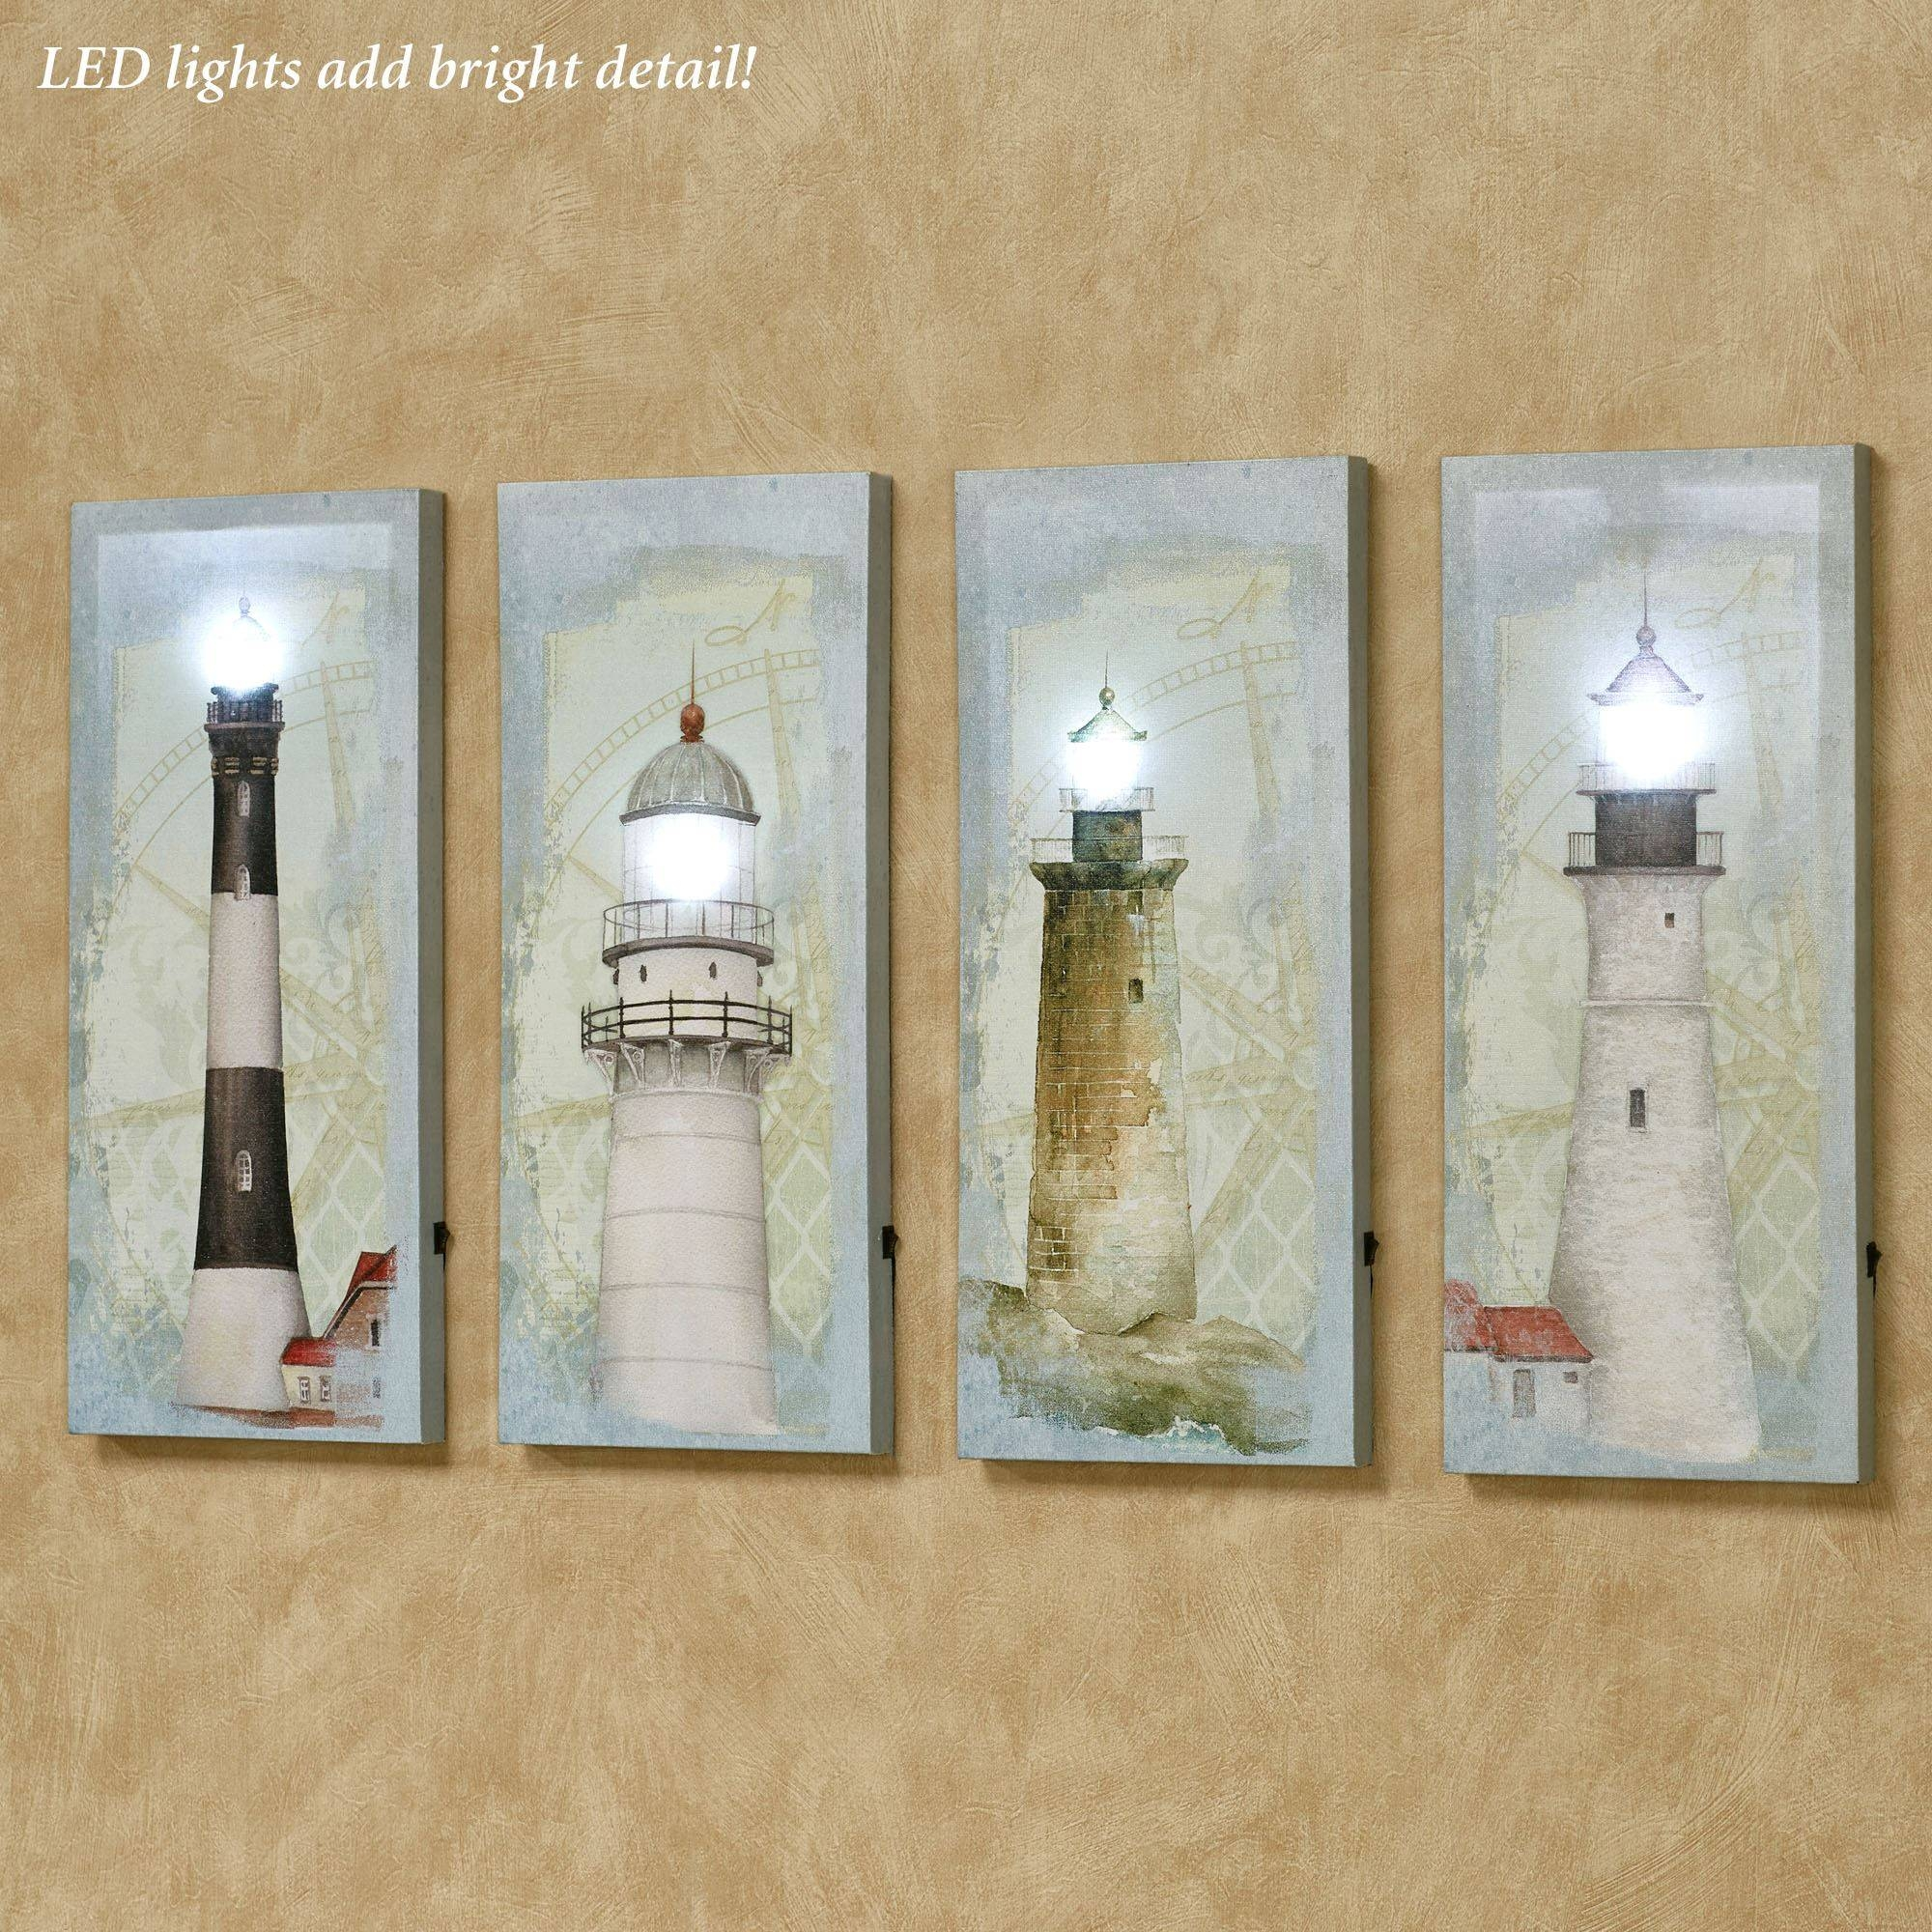 Coastal Lighthouse Led Lighted Canvas Wall Art Set Within Newest Coastal Wall Art Canvas (View 7 of 20)